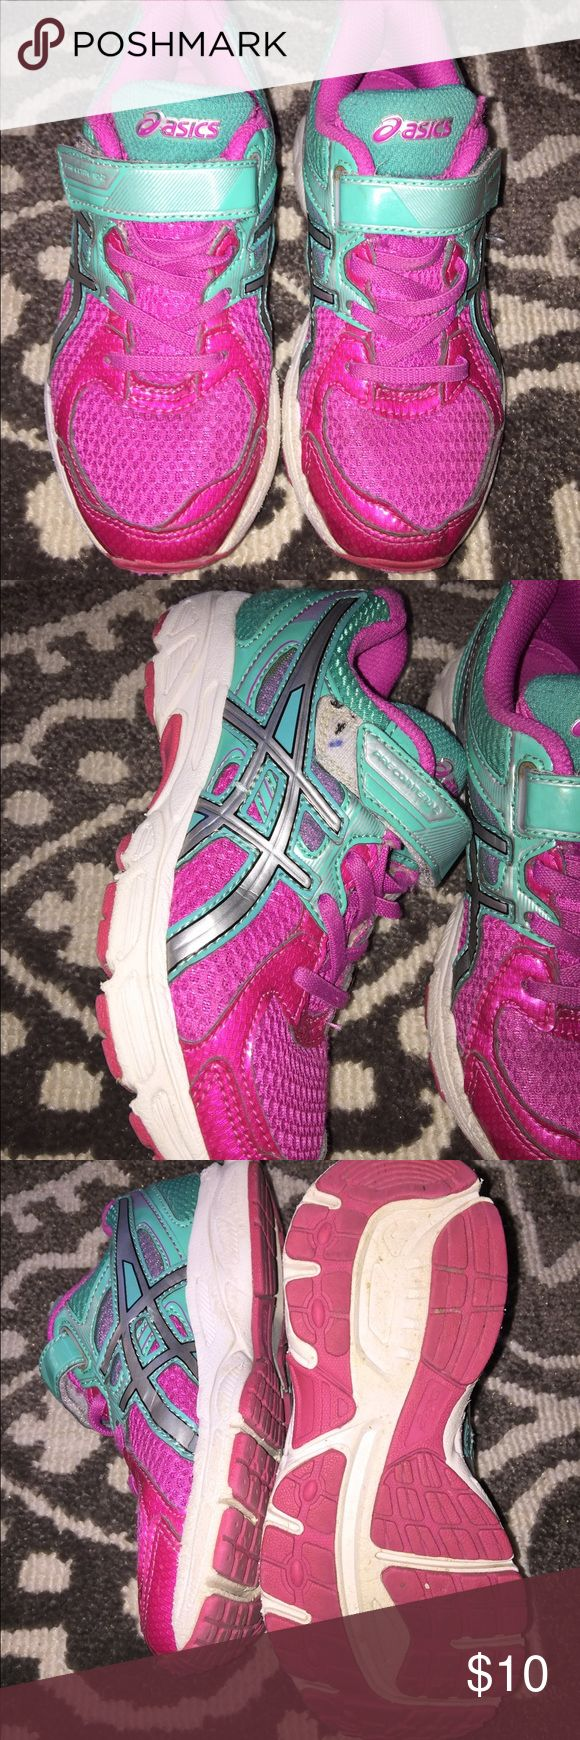 Asics girls tennis shoes Asics girls tennies size 13 - gently used good condition - worn one season Asics Shoes Sneakers